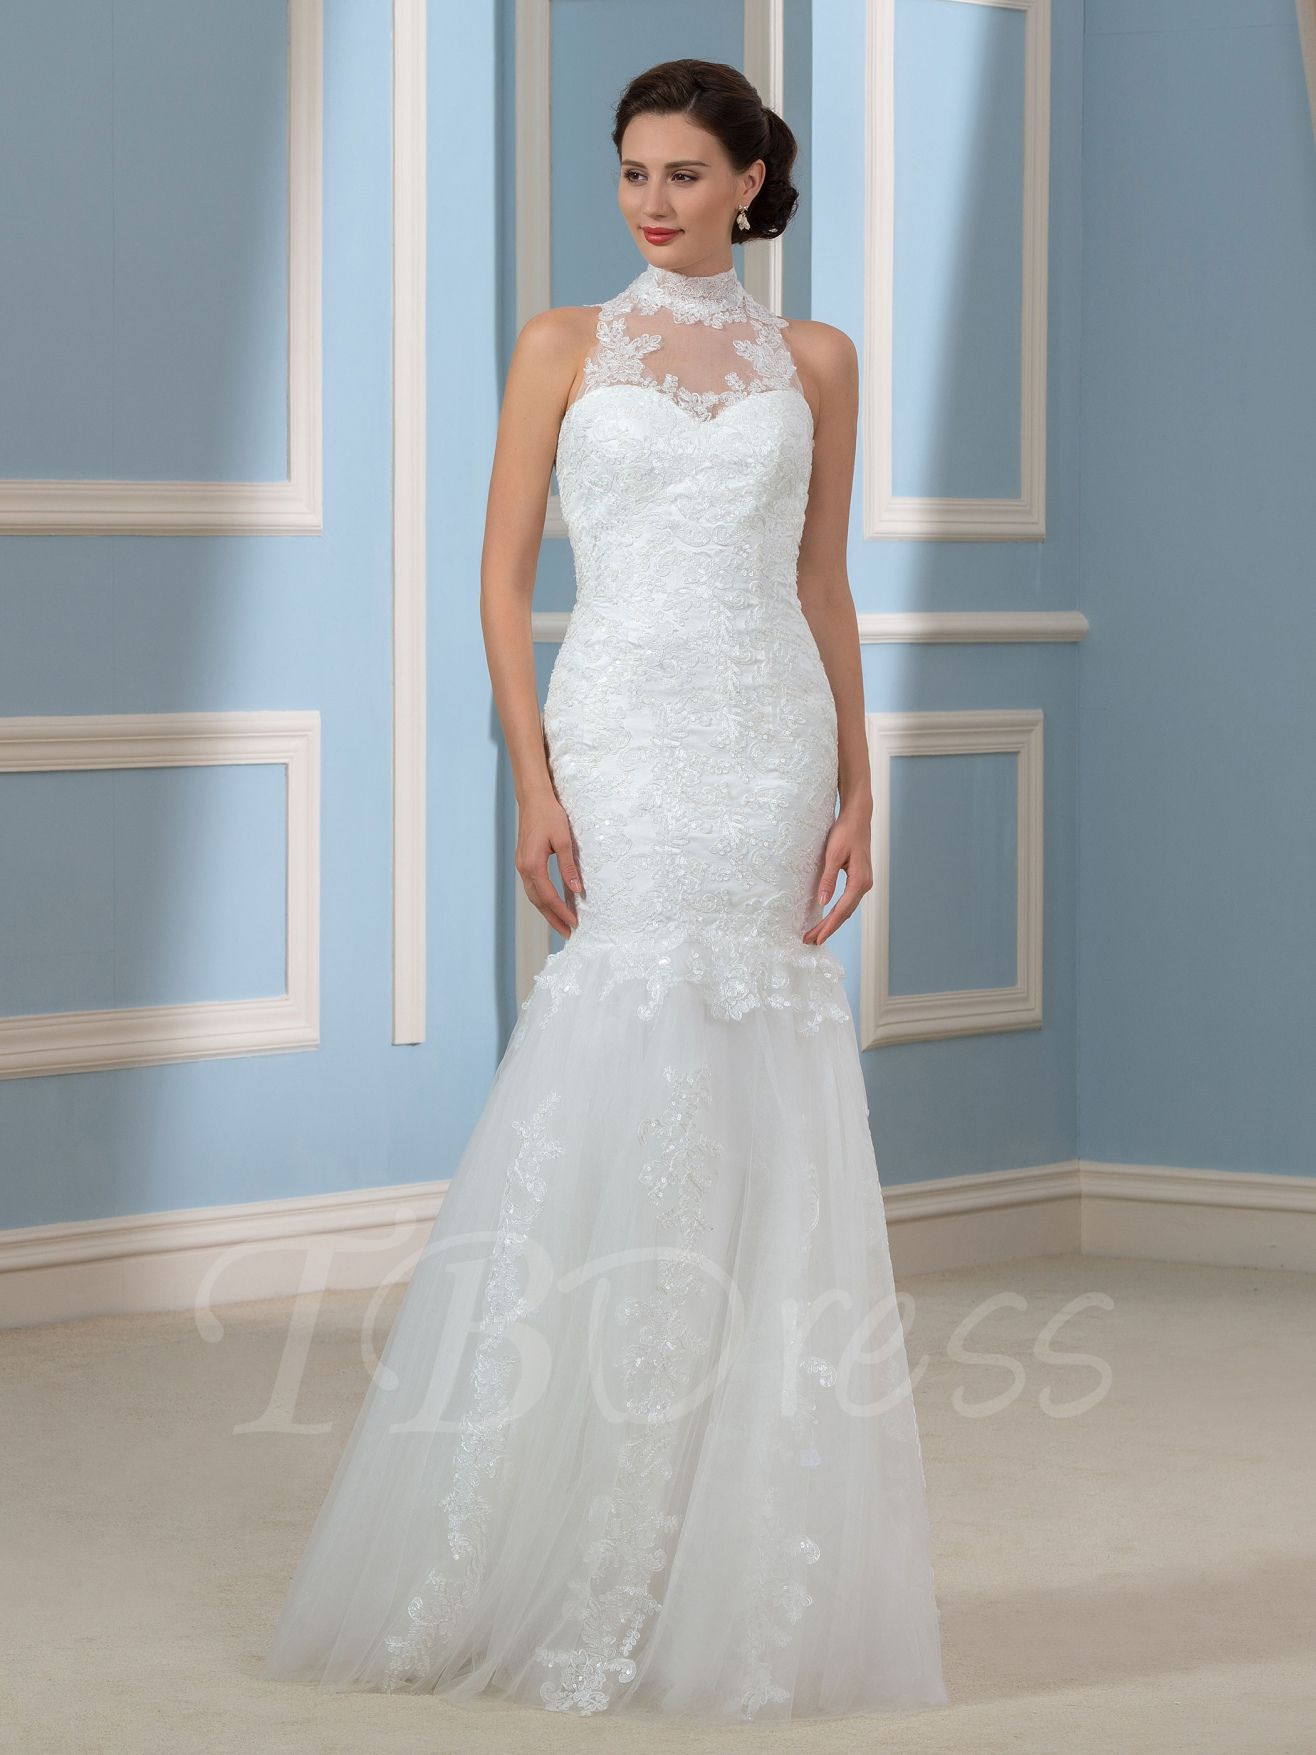 Back out wedding dresses   Back Out Wedding Dresses  Dresses for Guest at Wedding Check